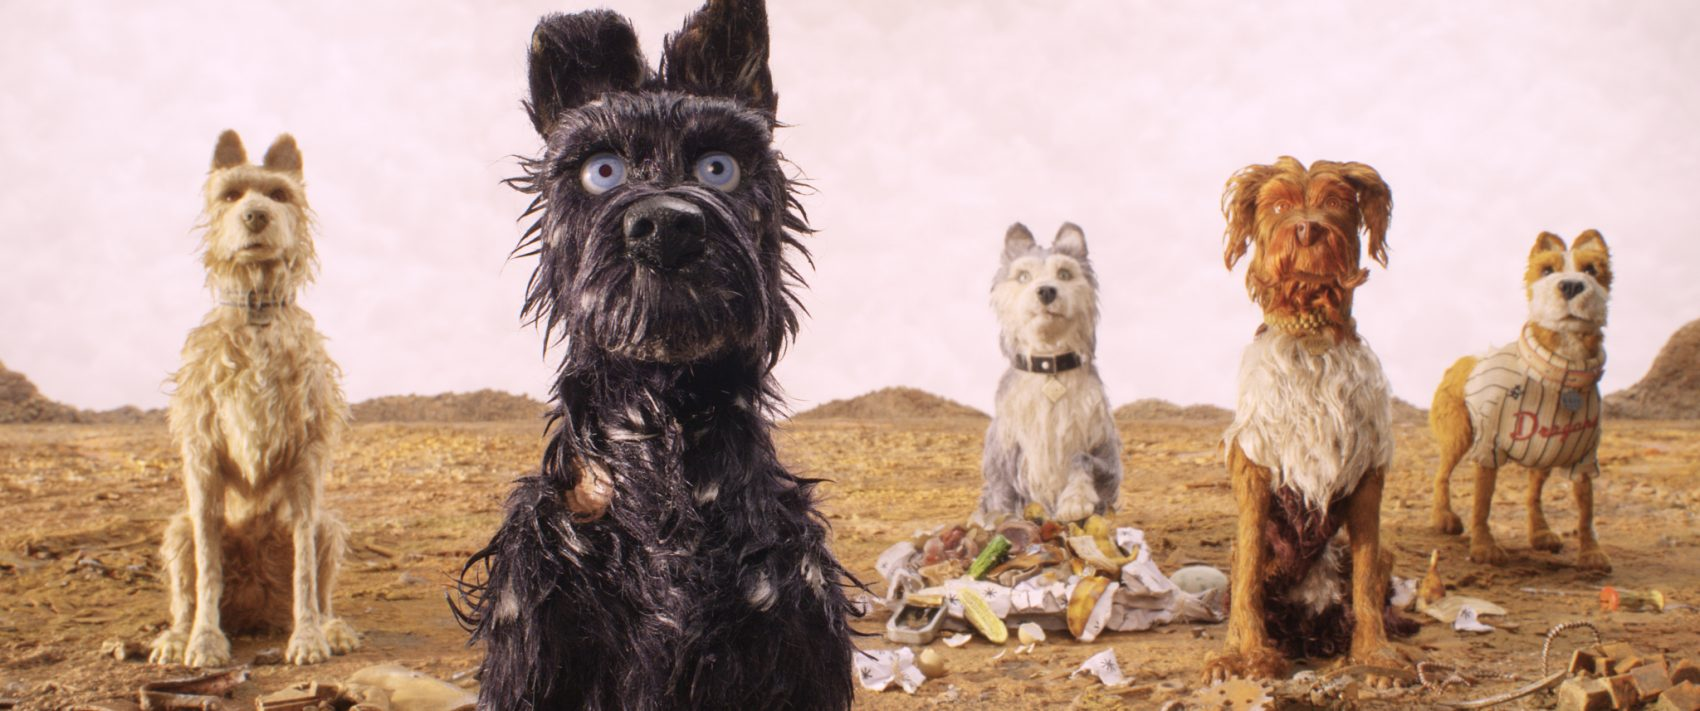 """Left to right, Edward Norton voices Rex, Bryan Cranston voices Chief, Jeff Goldblum voices Duke, Bob Balaban voices King and Bill Murray voices Boss in Wes Anderson's """"Isle of Dogs."""" (Courtesy Fox Searchlight Pictures)"""